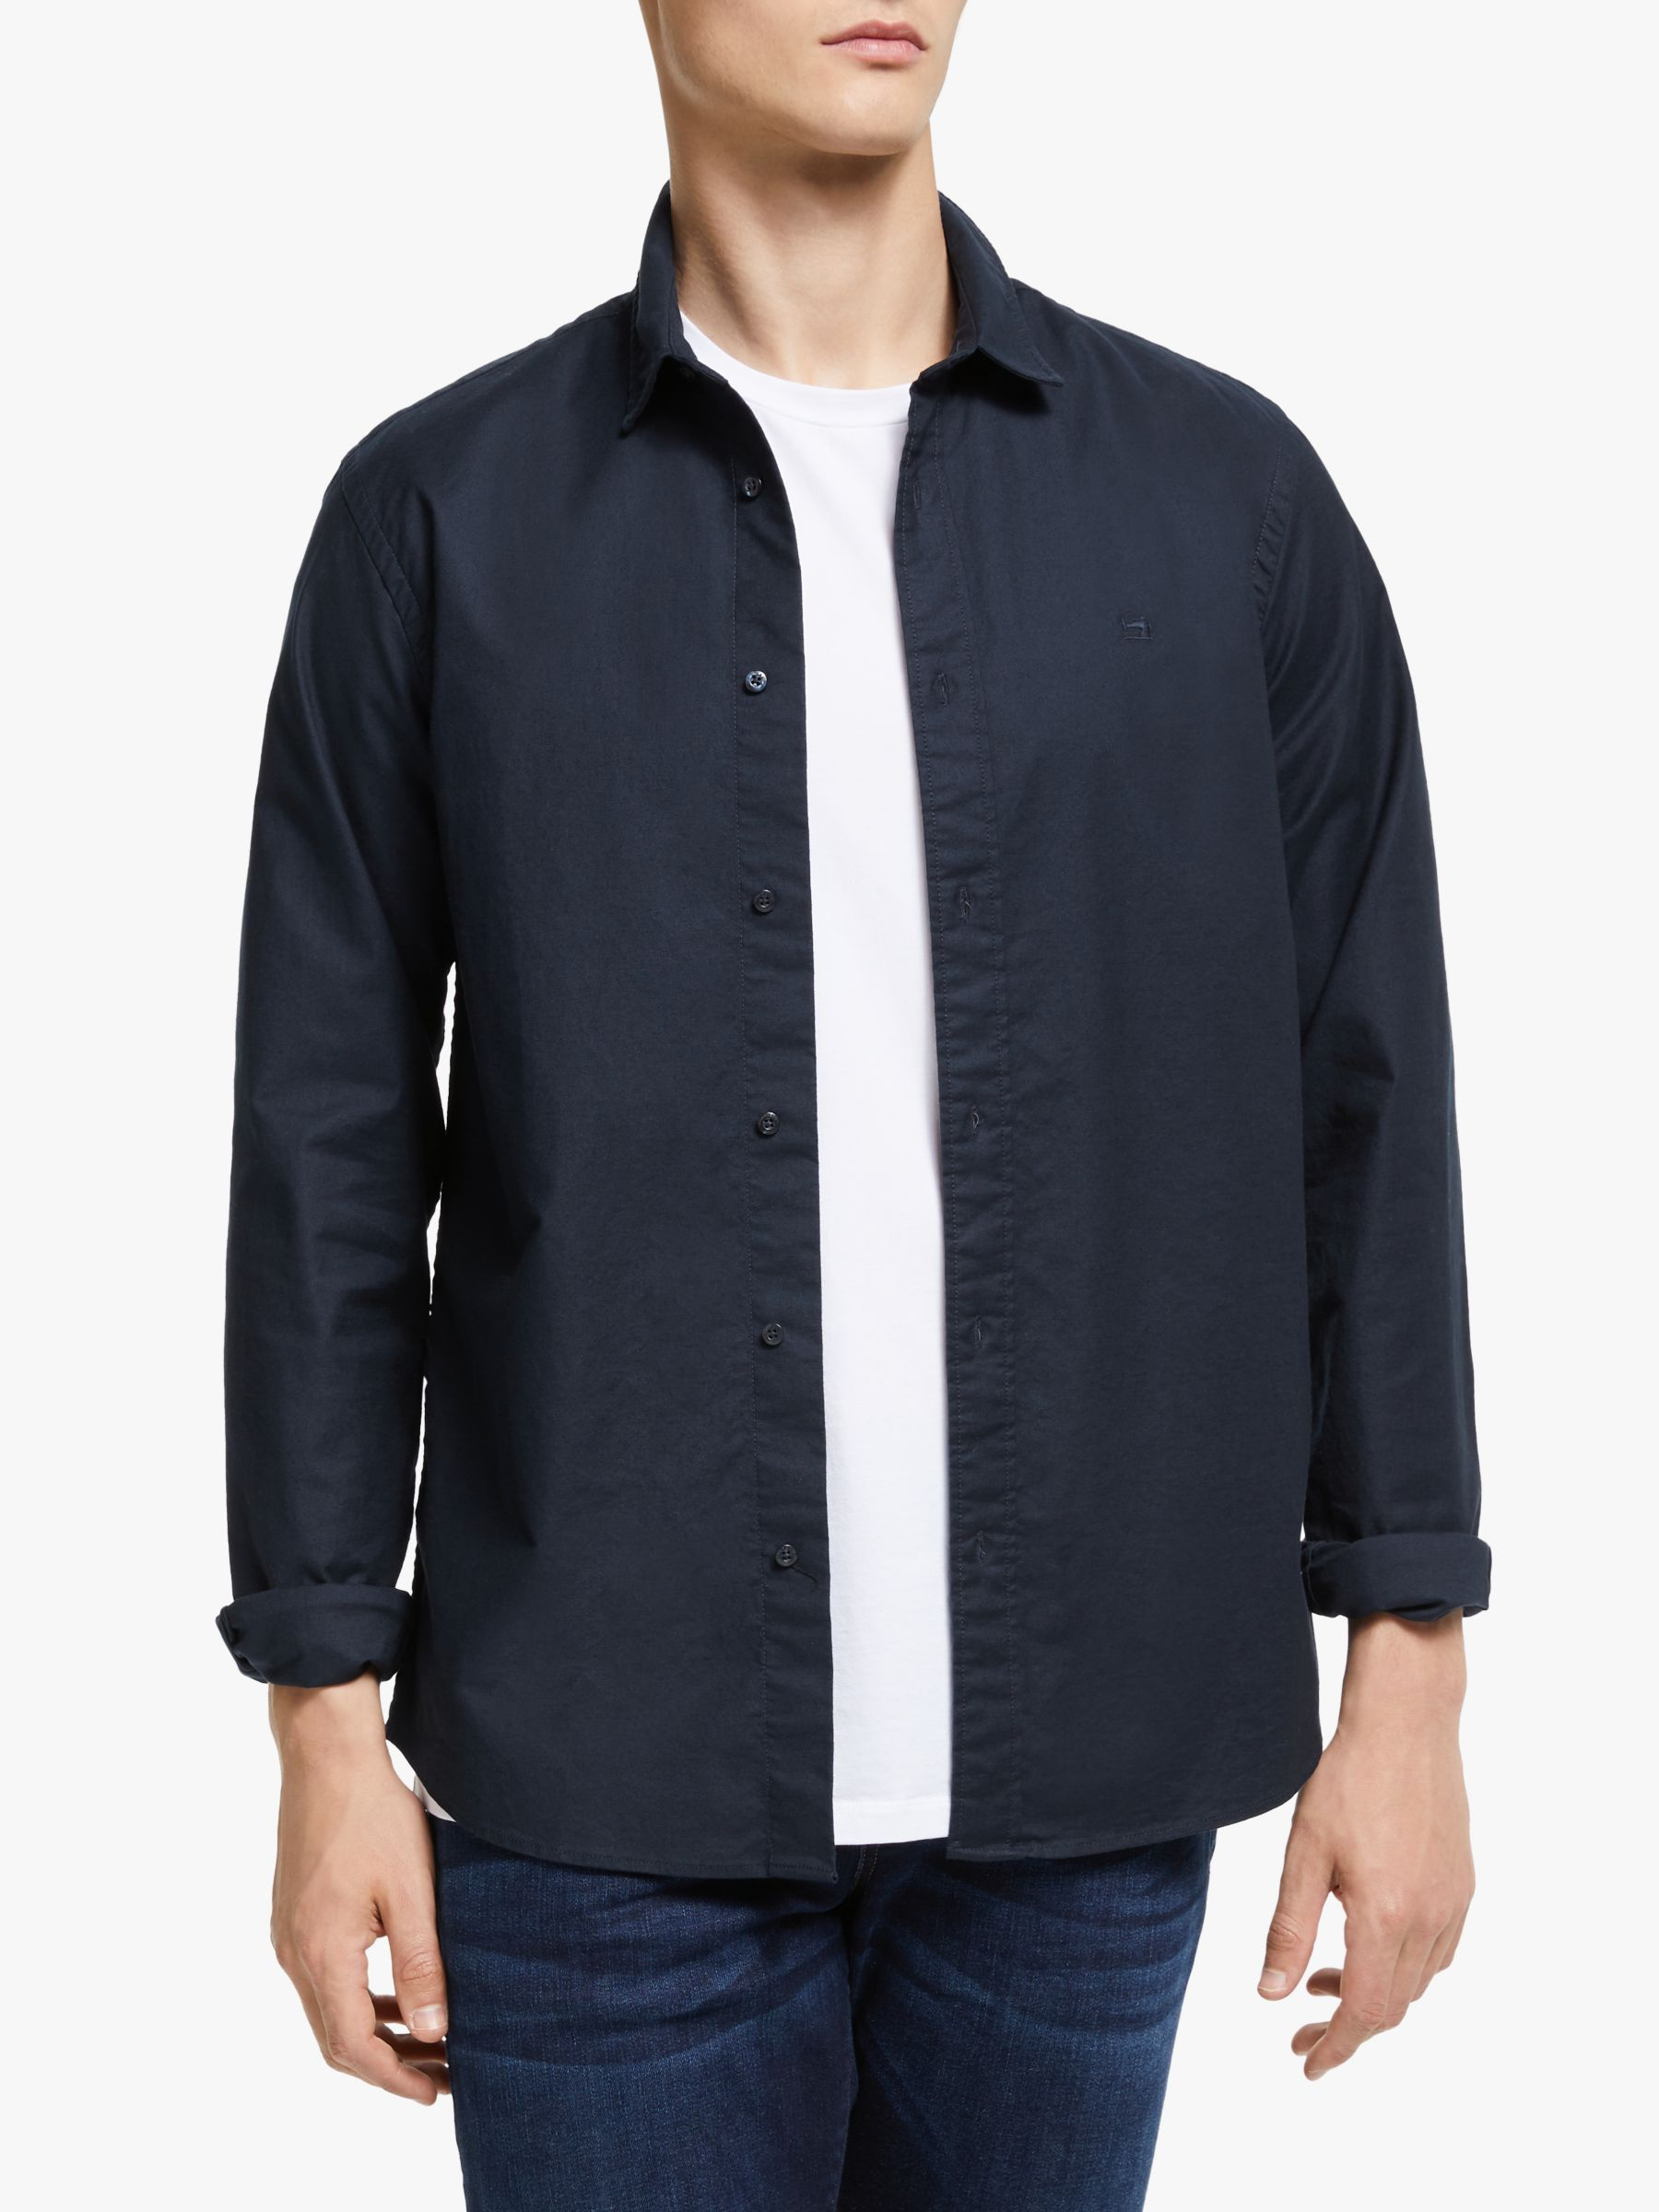 Scotch & Soda Scotch & Soda Nos Oxford Shirt, Navy